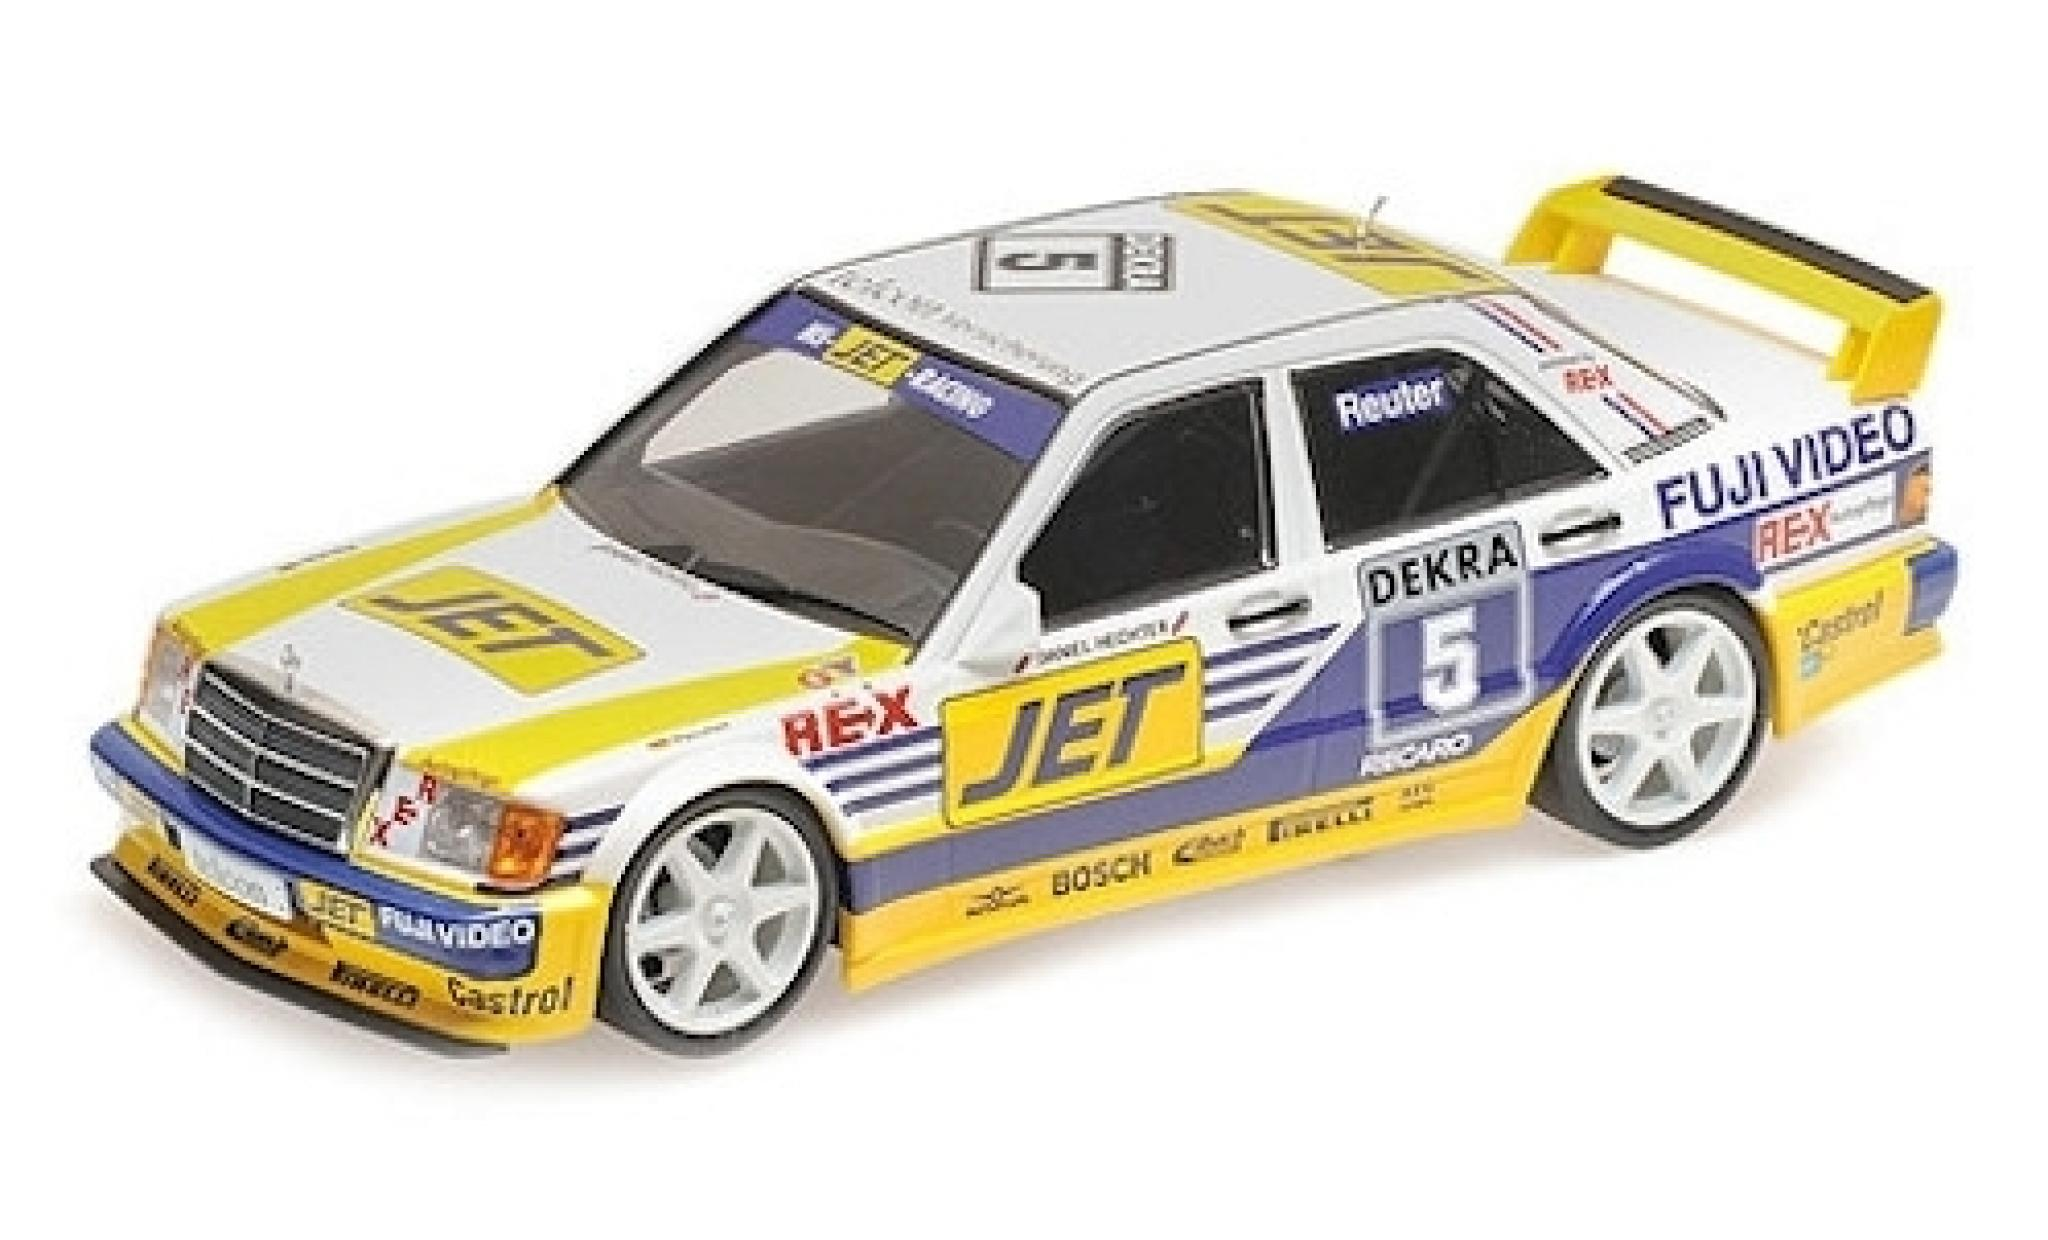 Mercedes 190 1/18 Minichamps E 2.5-16 Evo 1 (W201) No.5 Team MS-JET Jet DTM 1989 M.Reuter